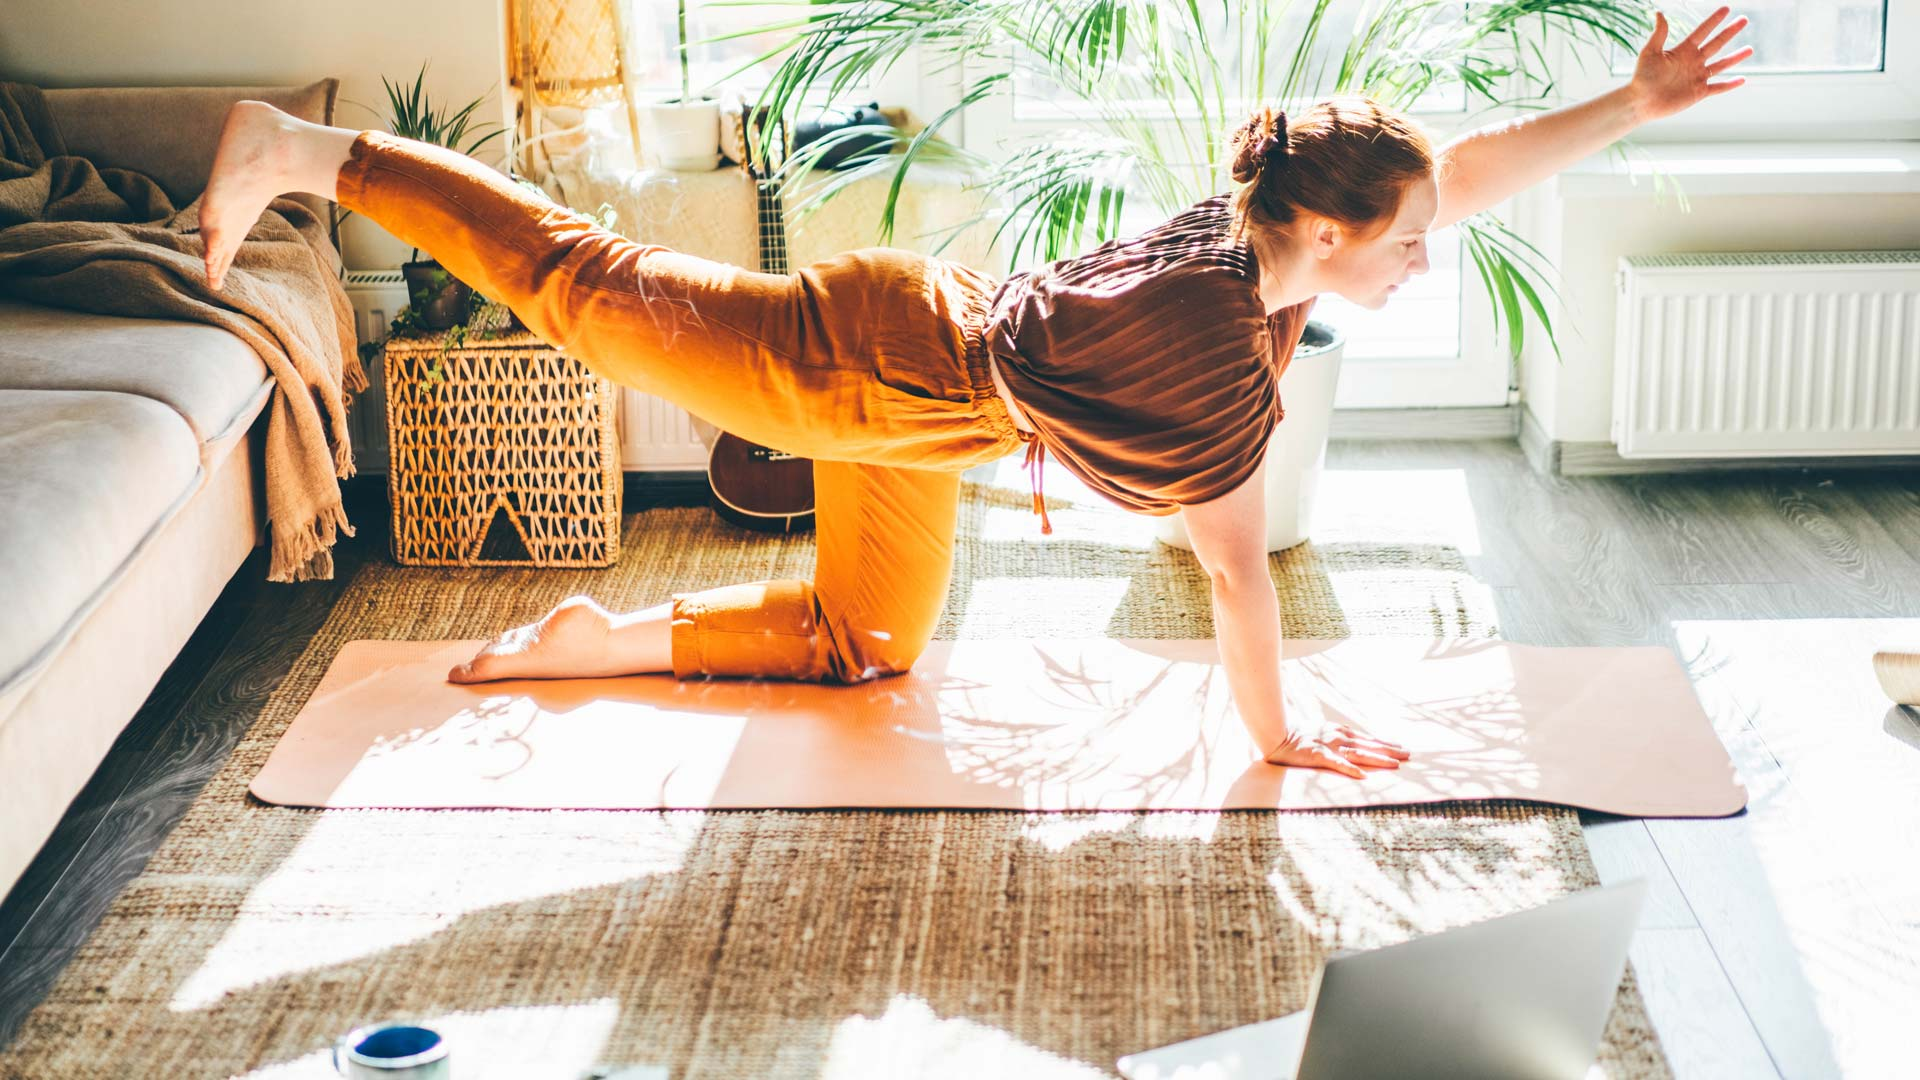 How to stay in shape during the pandemic – the best tips for at-home workouts and fitness